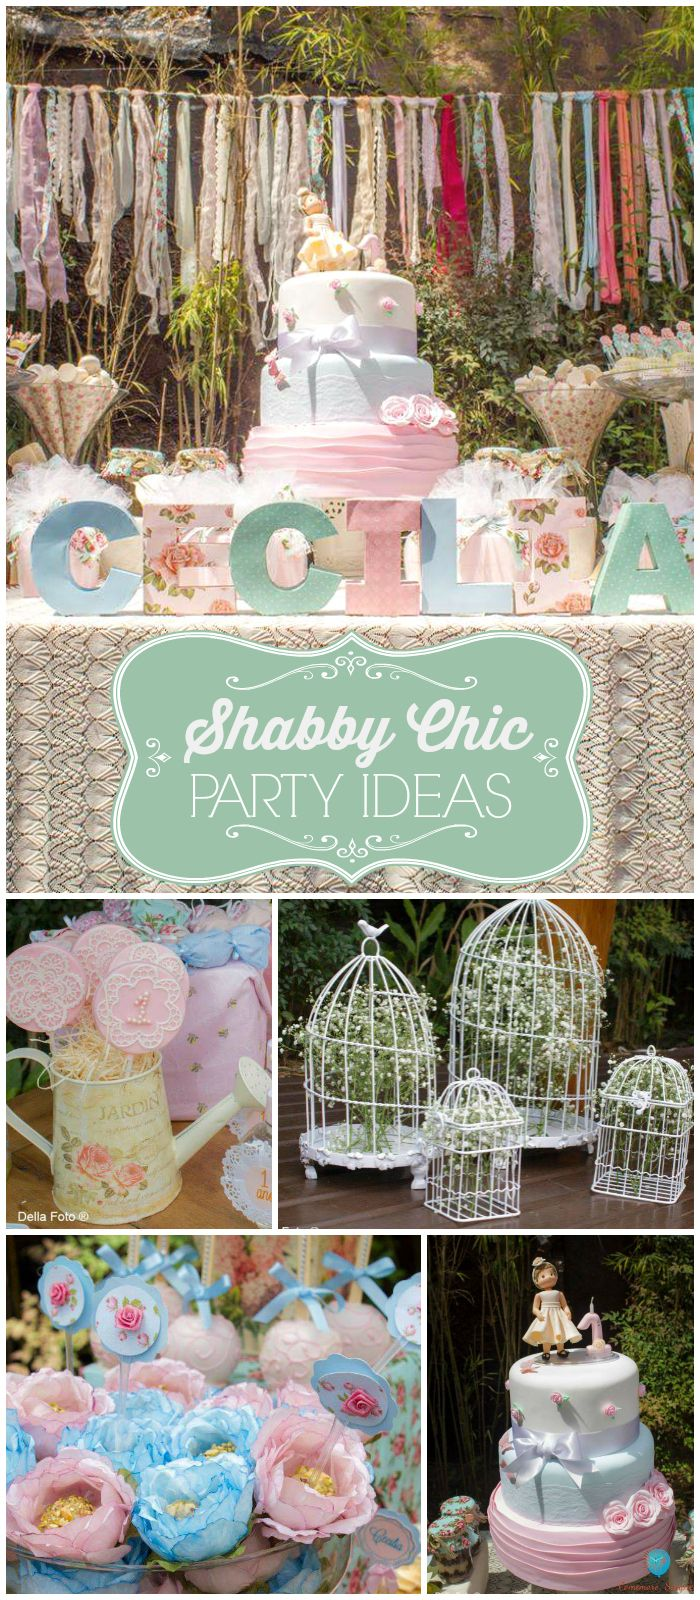 Mesmerizing  Best Ideas About Shabby Chic Birthday On Pinterest  Shabby  With Hot  Best Ideas About Shabby Chic Birthday On Pinterest  Shabby Chic  Banners Pastel Party Decorations And Shabby Chic Baby Shower With Amusing Tong Garden Centre Opening Times Also Bq Uk Garden In Addition Stanborough School Welwyn Garden City And North West Facing Garden As Well As Wilkinsons Garden Lights Additionally Reiss Covent Garden From Pinterestcom With   Hot  Best Ideas About Shabby Chic Birthday On Pinterest  Shabby  With Amusing  Best Ideas About Shabby Chic Birthday On Pinterest  Shabby Chic  Banners Pastel Party Decorations And Shabby Chic Baby Shower And Mesmerizing Tong Garden Centre Opening Times Also Bq Uk Garden In Addition Stanborough School Welwyn Garden City From Pinterestcom